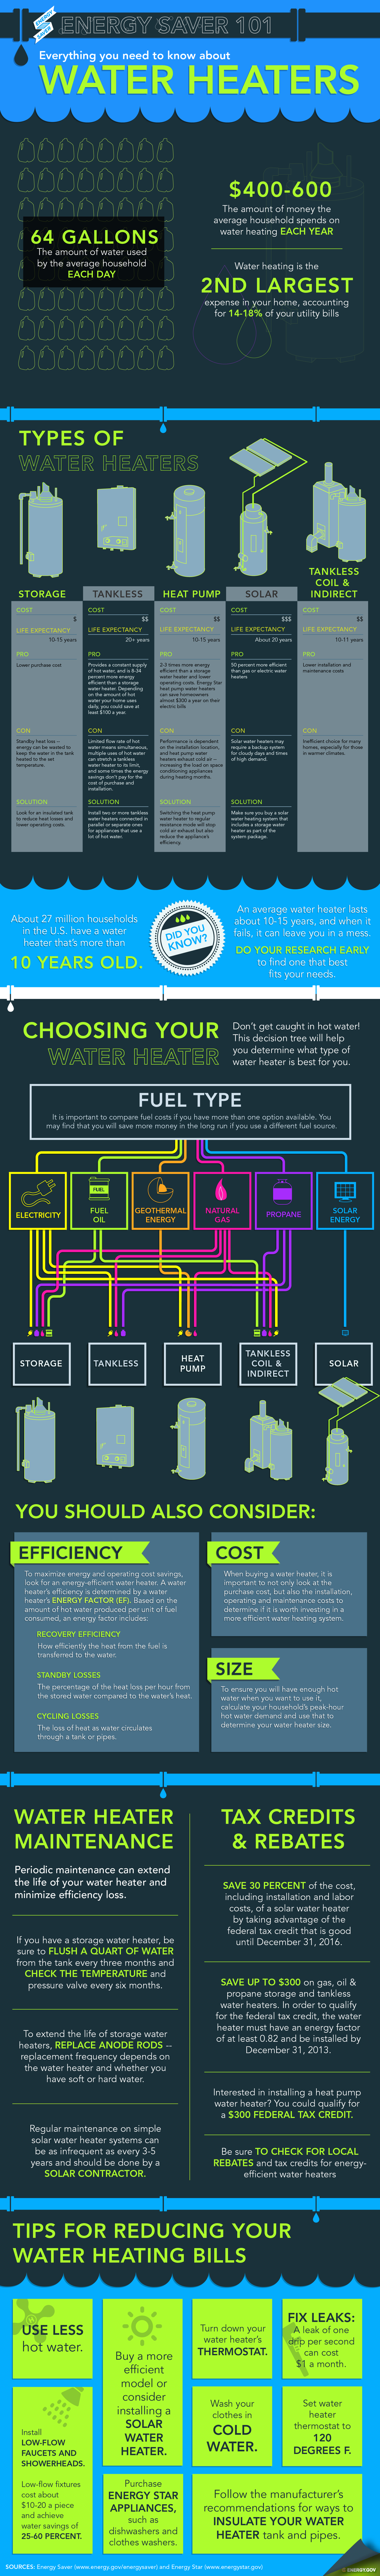 Energy Saver 101 tips infographic